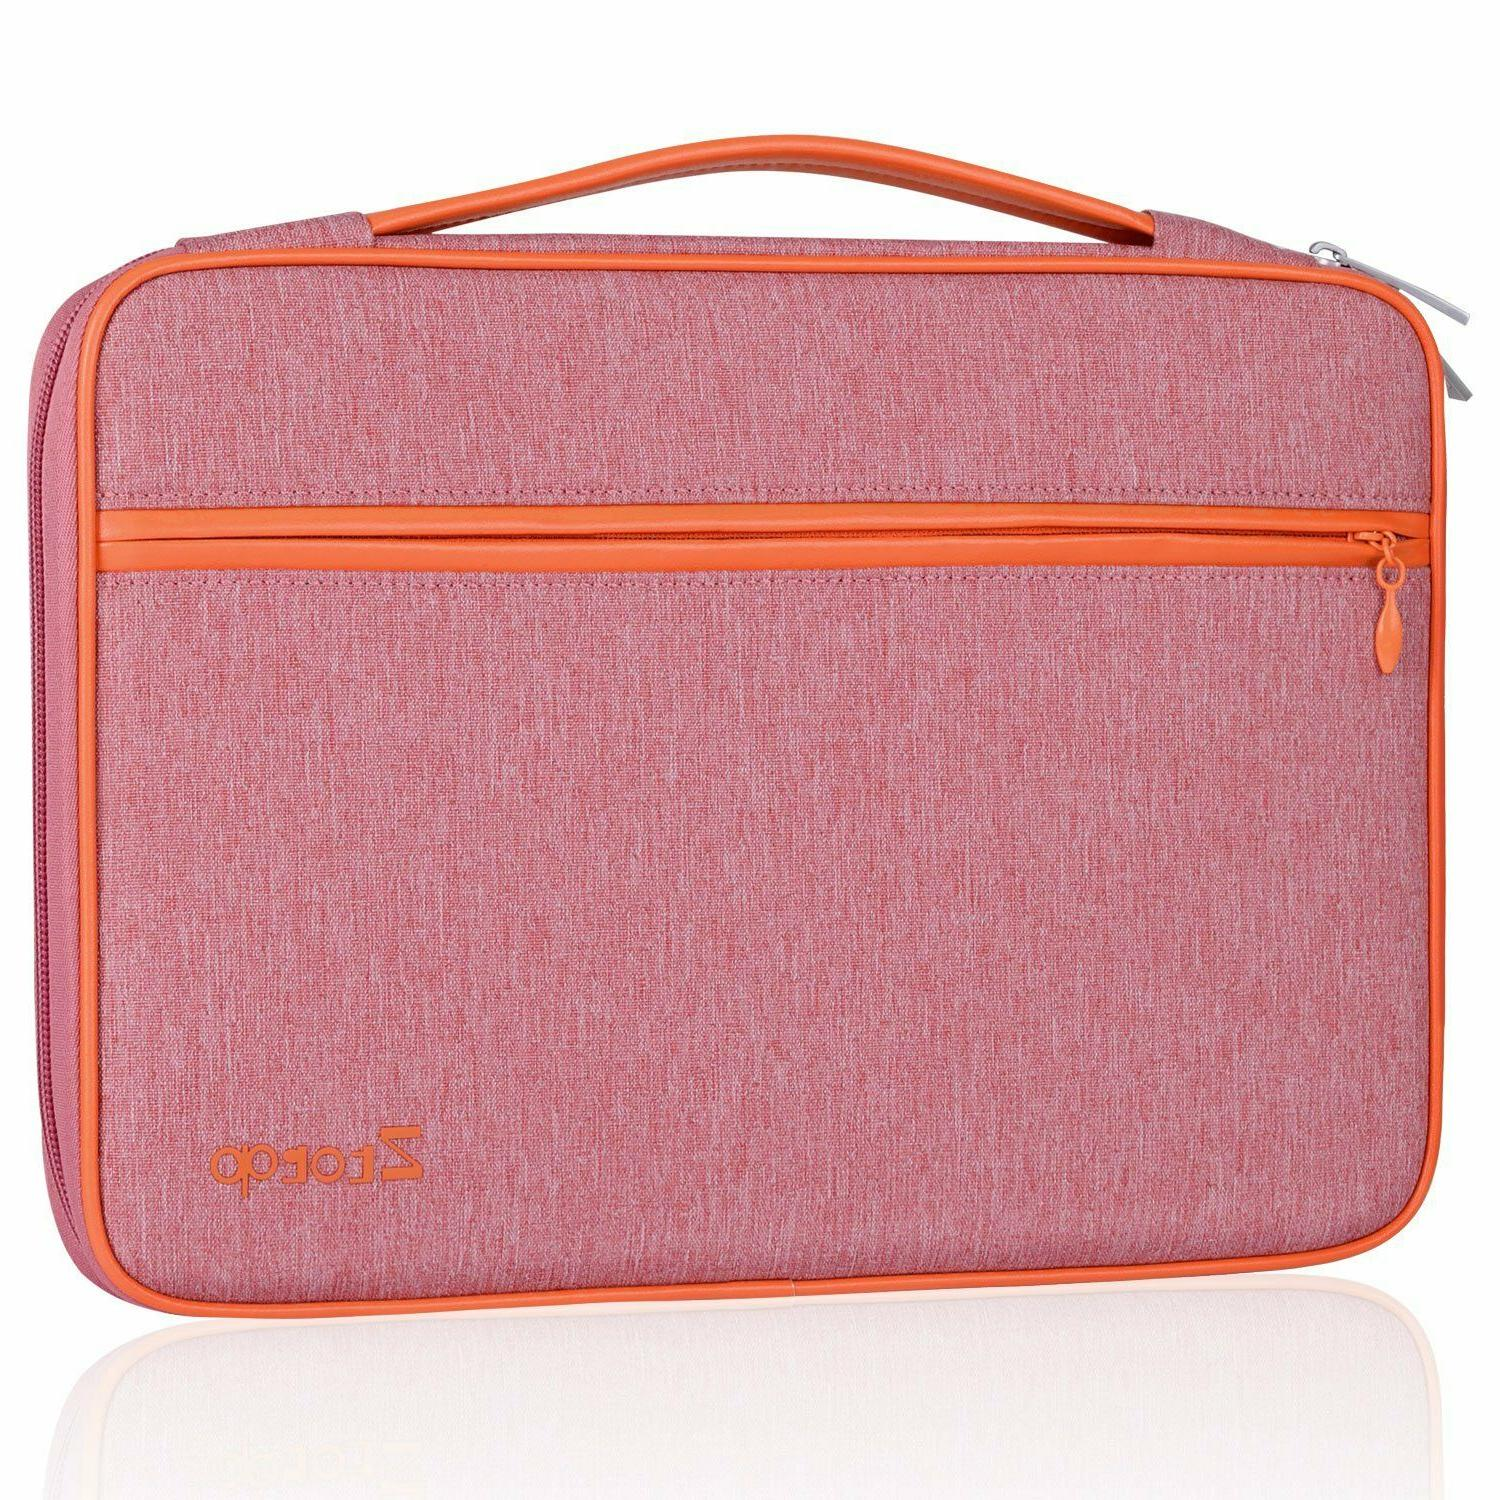 "Laptop Sleeve Case Protective Waterproof Bag for 15-15.6"" La"